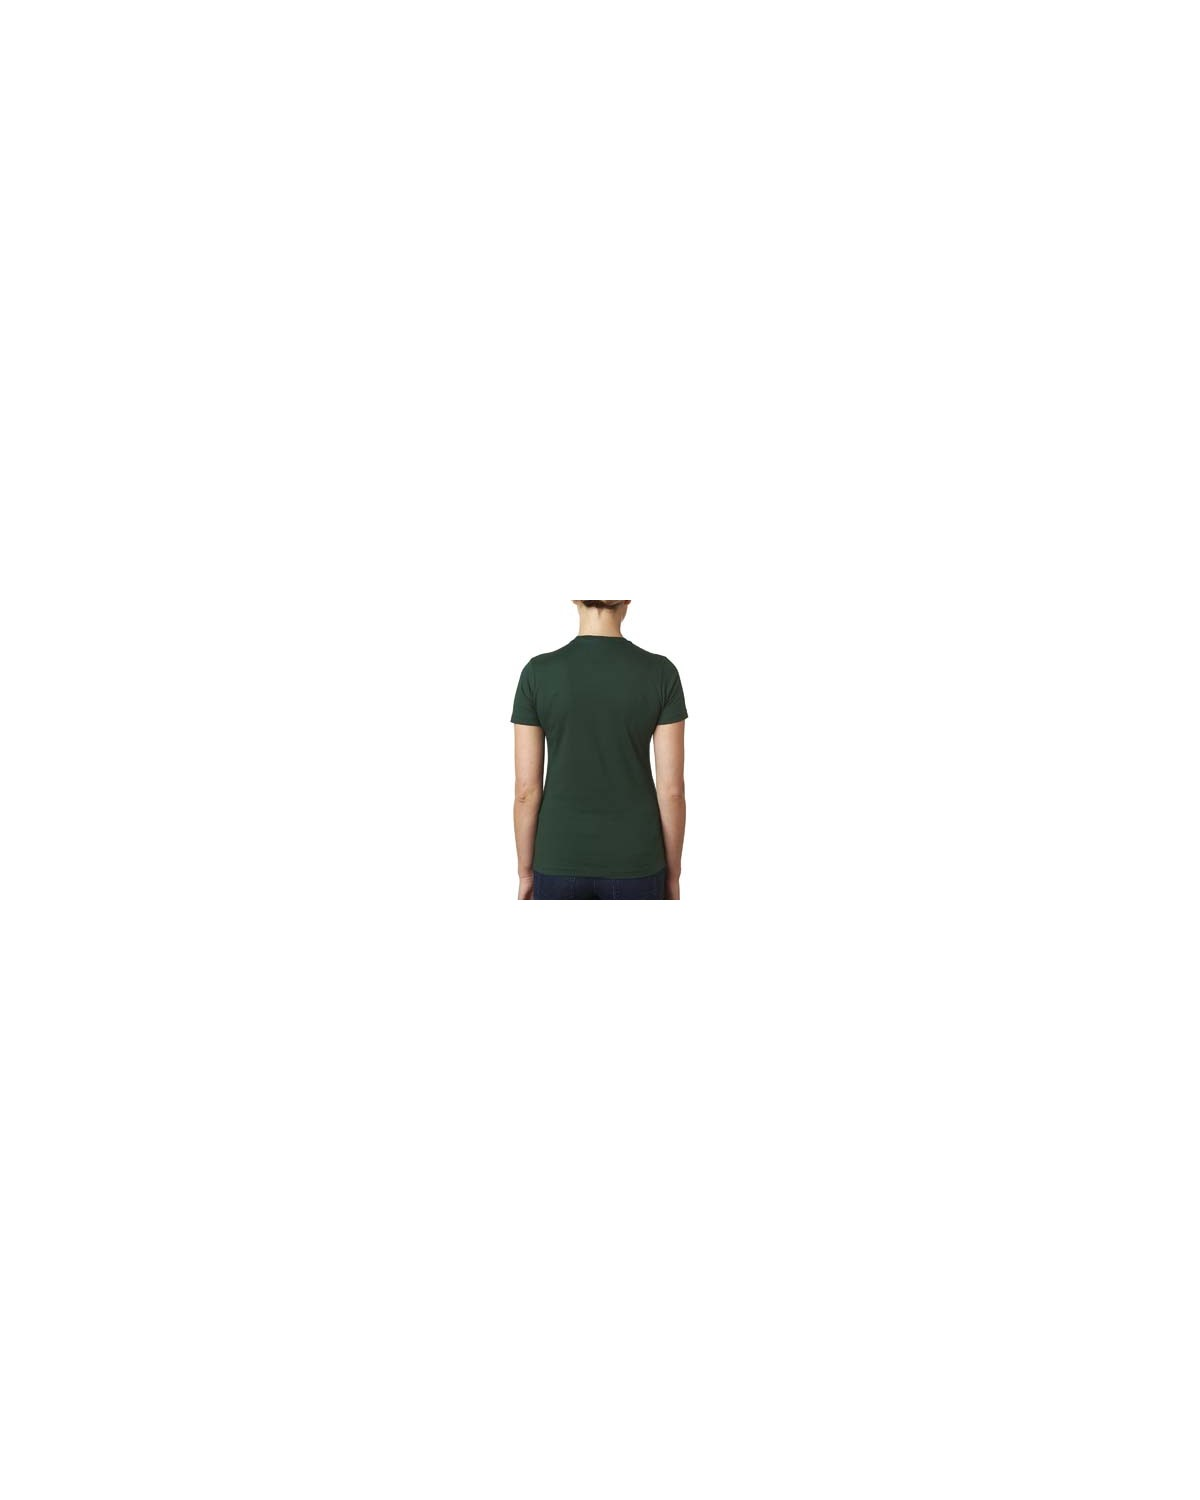 N3900 Next Level FOREST GREEN